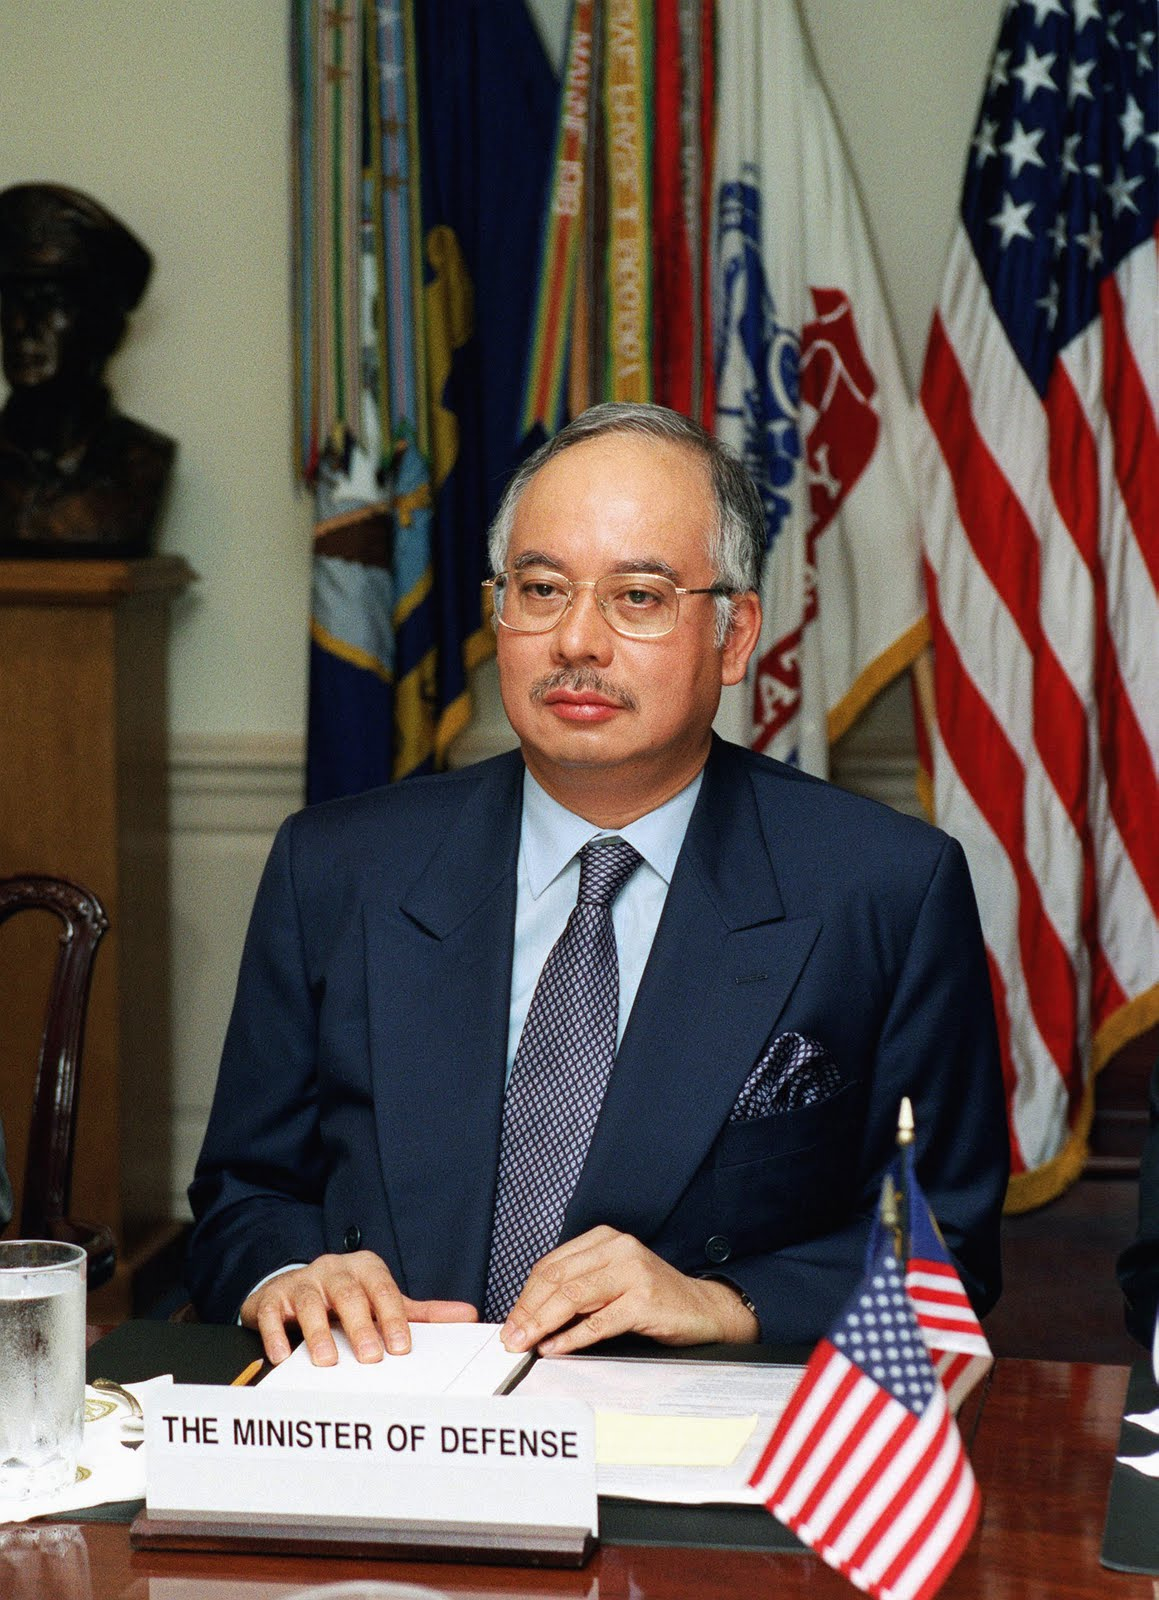 prime minister of malaysia It was a great honor to welcome prime minister najib abdul razak of malaysia  and his distinguished delegation to the @whitehouse today.